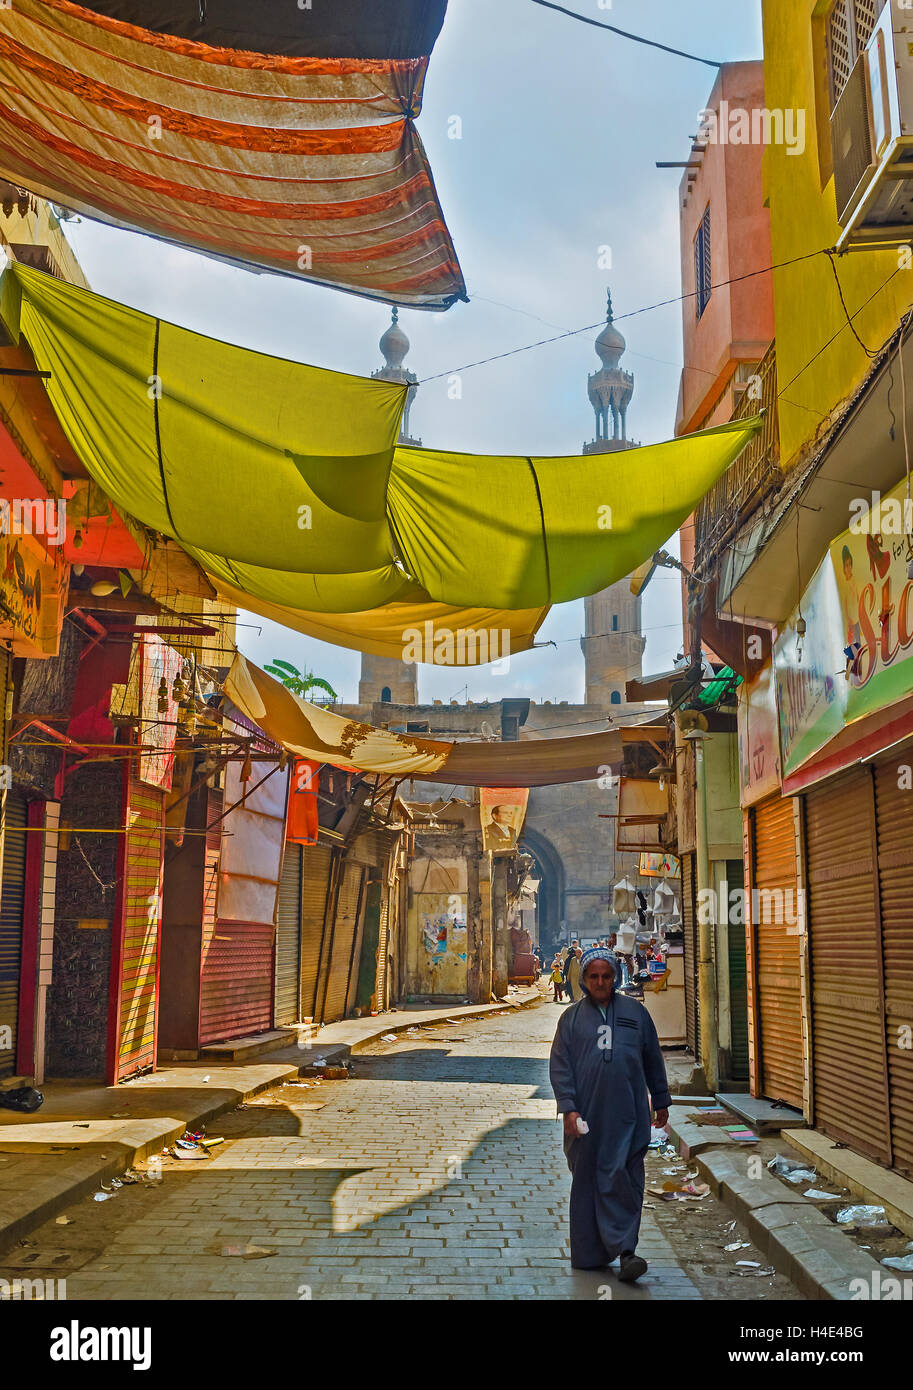 The merchants of Al-Muizz street market use colorful cloth to make the sunshades over the stalls, Cairo Egypt - Stock Image